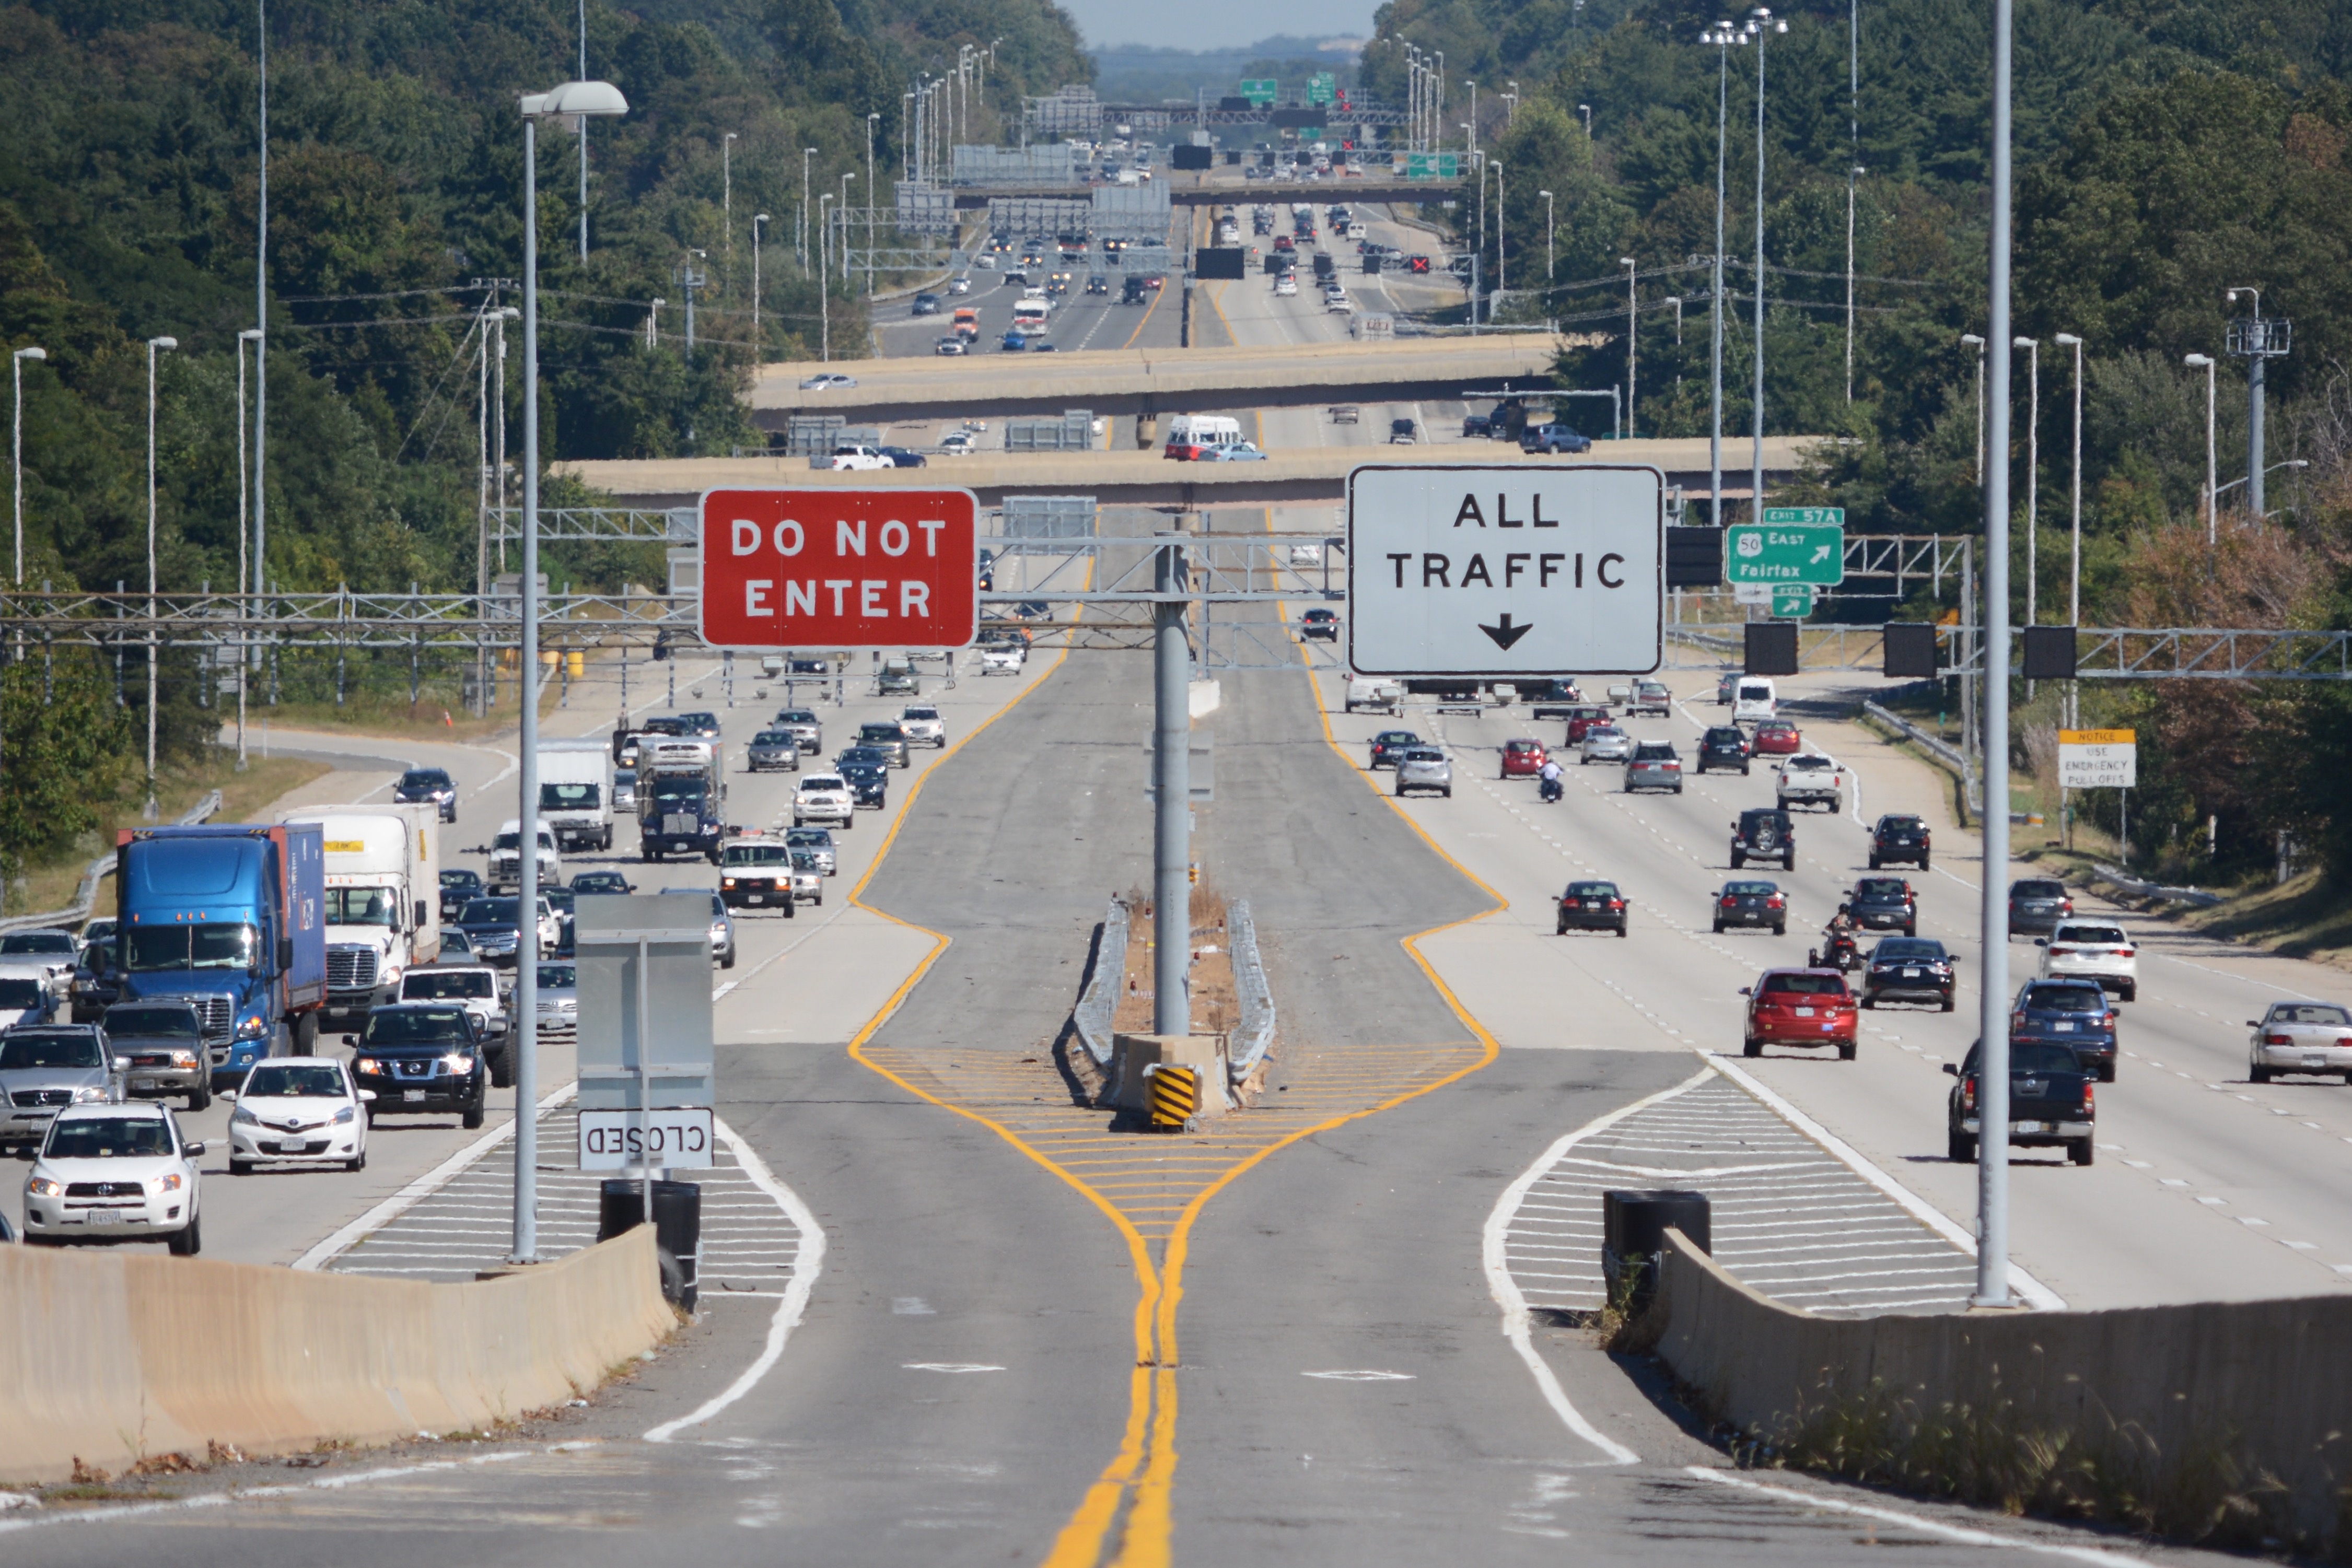 Arlington board wants I-66 widening delayed